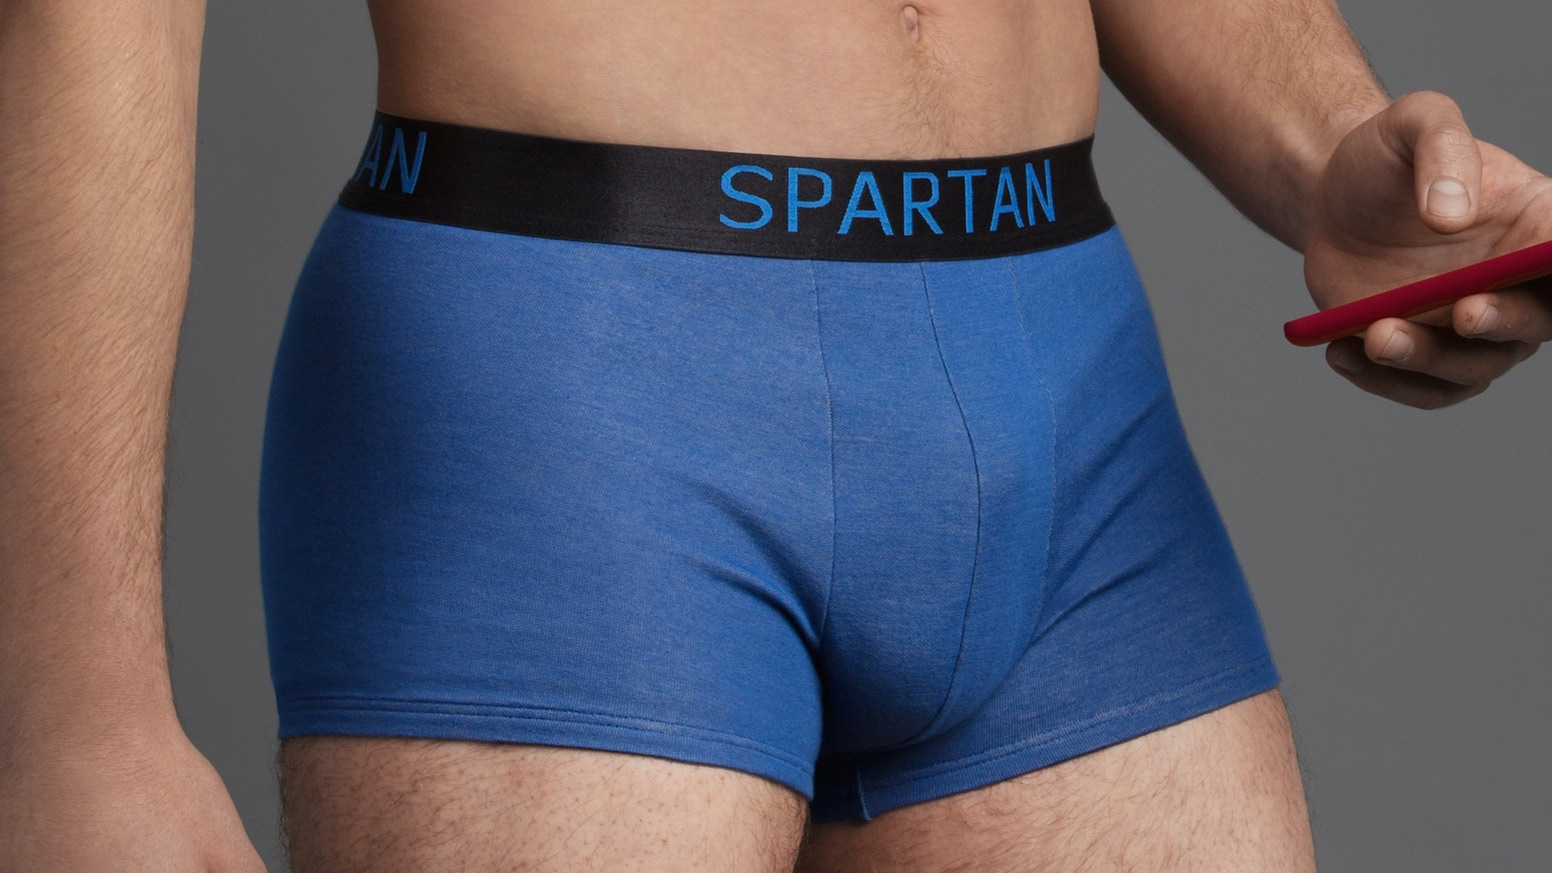 ec1f2fe9d4 SPARTAN is a stylish high-tech boxer that protects your manhood by blocking  cellphone and